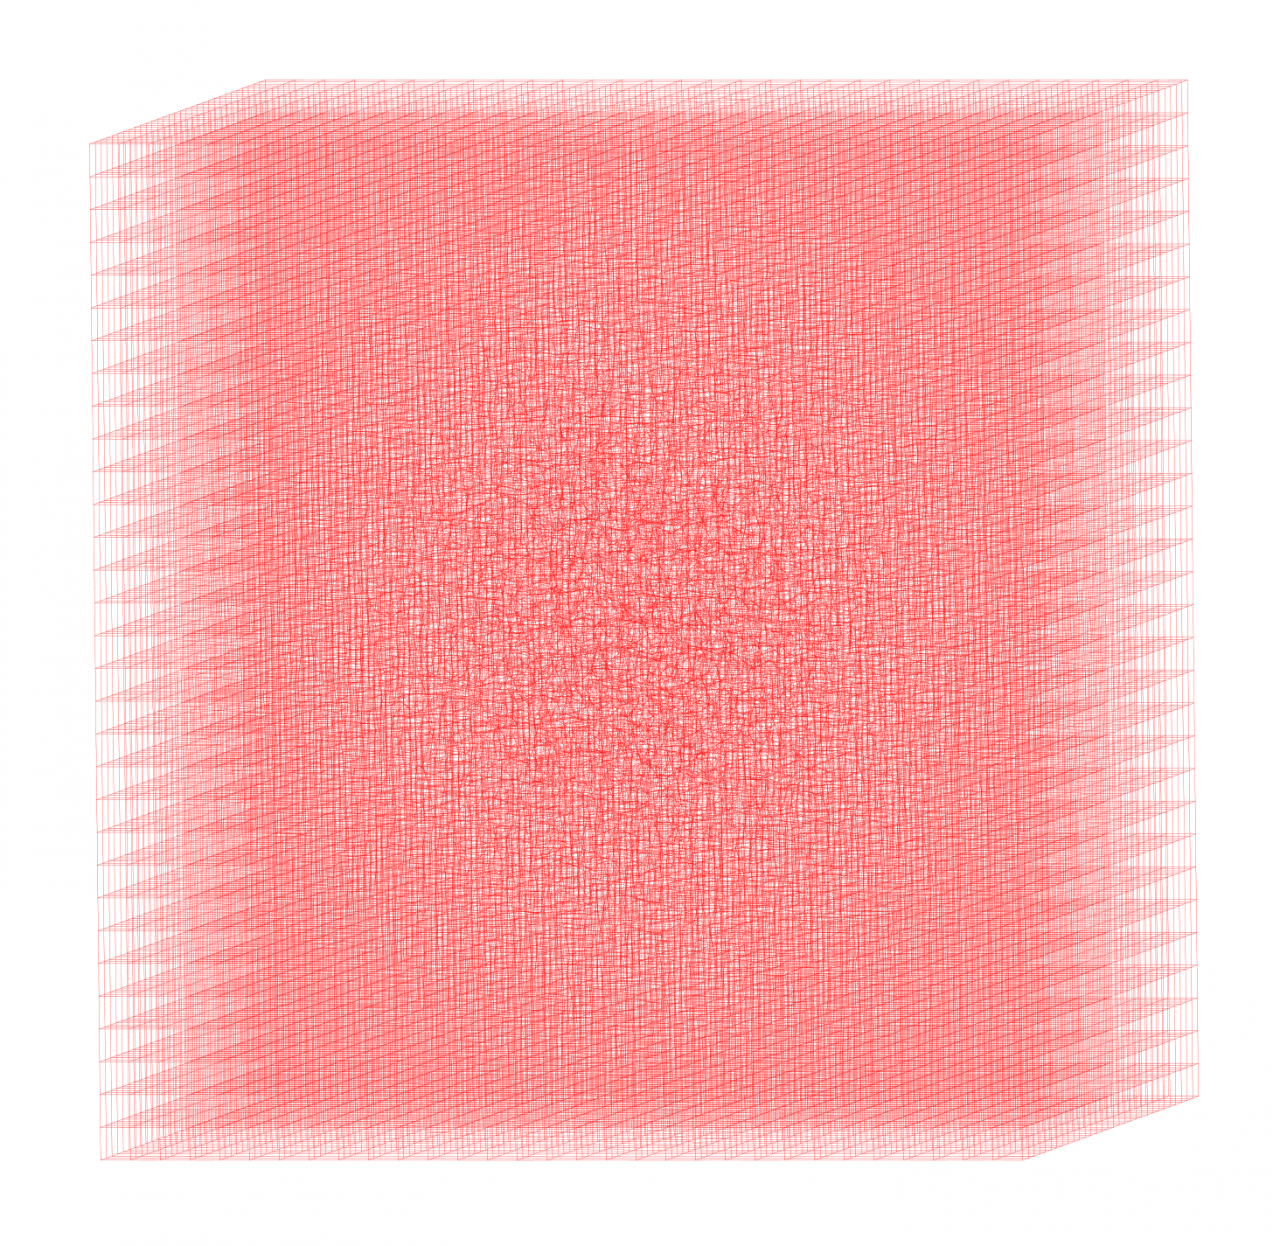 Three-dimensional body of red grid lines